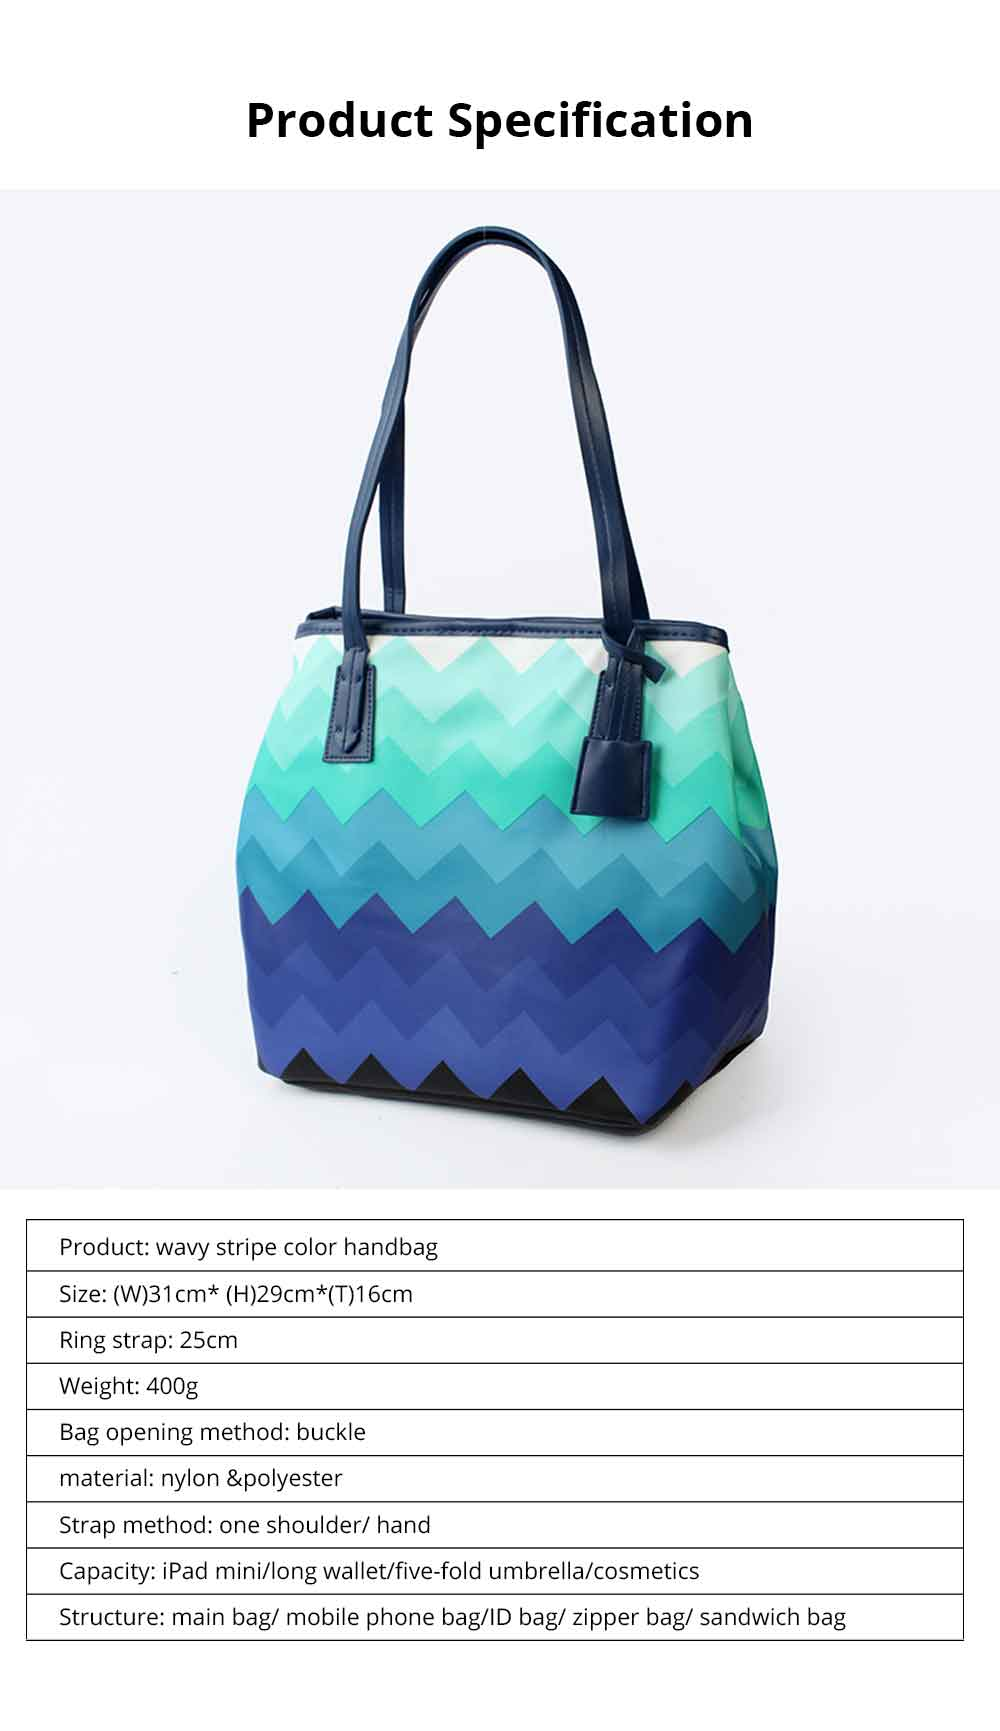 Wavy Stripe Color Handbag With Multifunctional Internal, Fashion Scratchproof Wear-resistant Handbag For Beauty Girl And Ladies 6